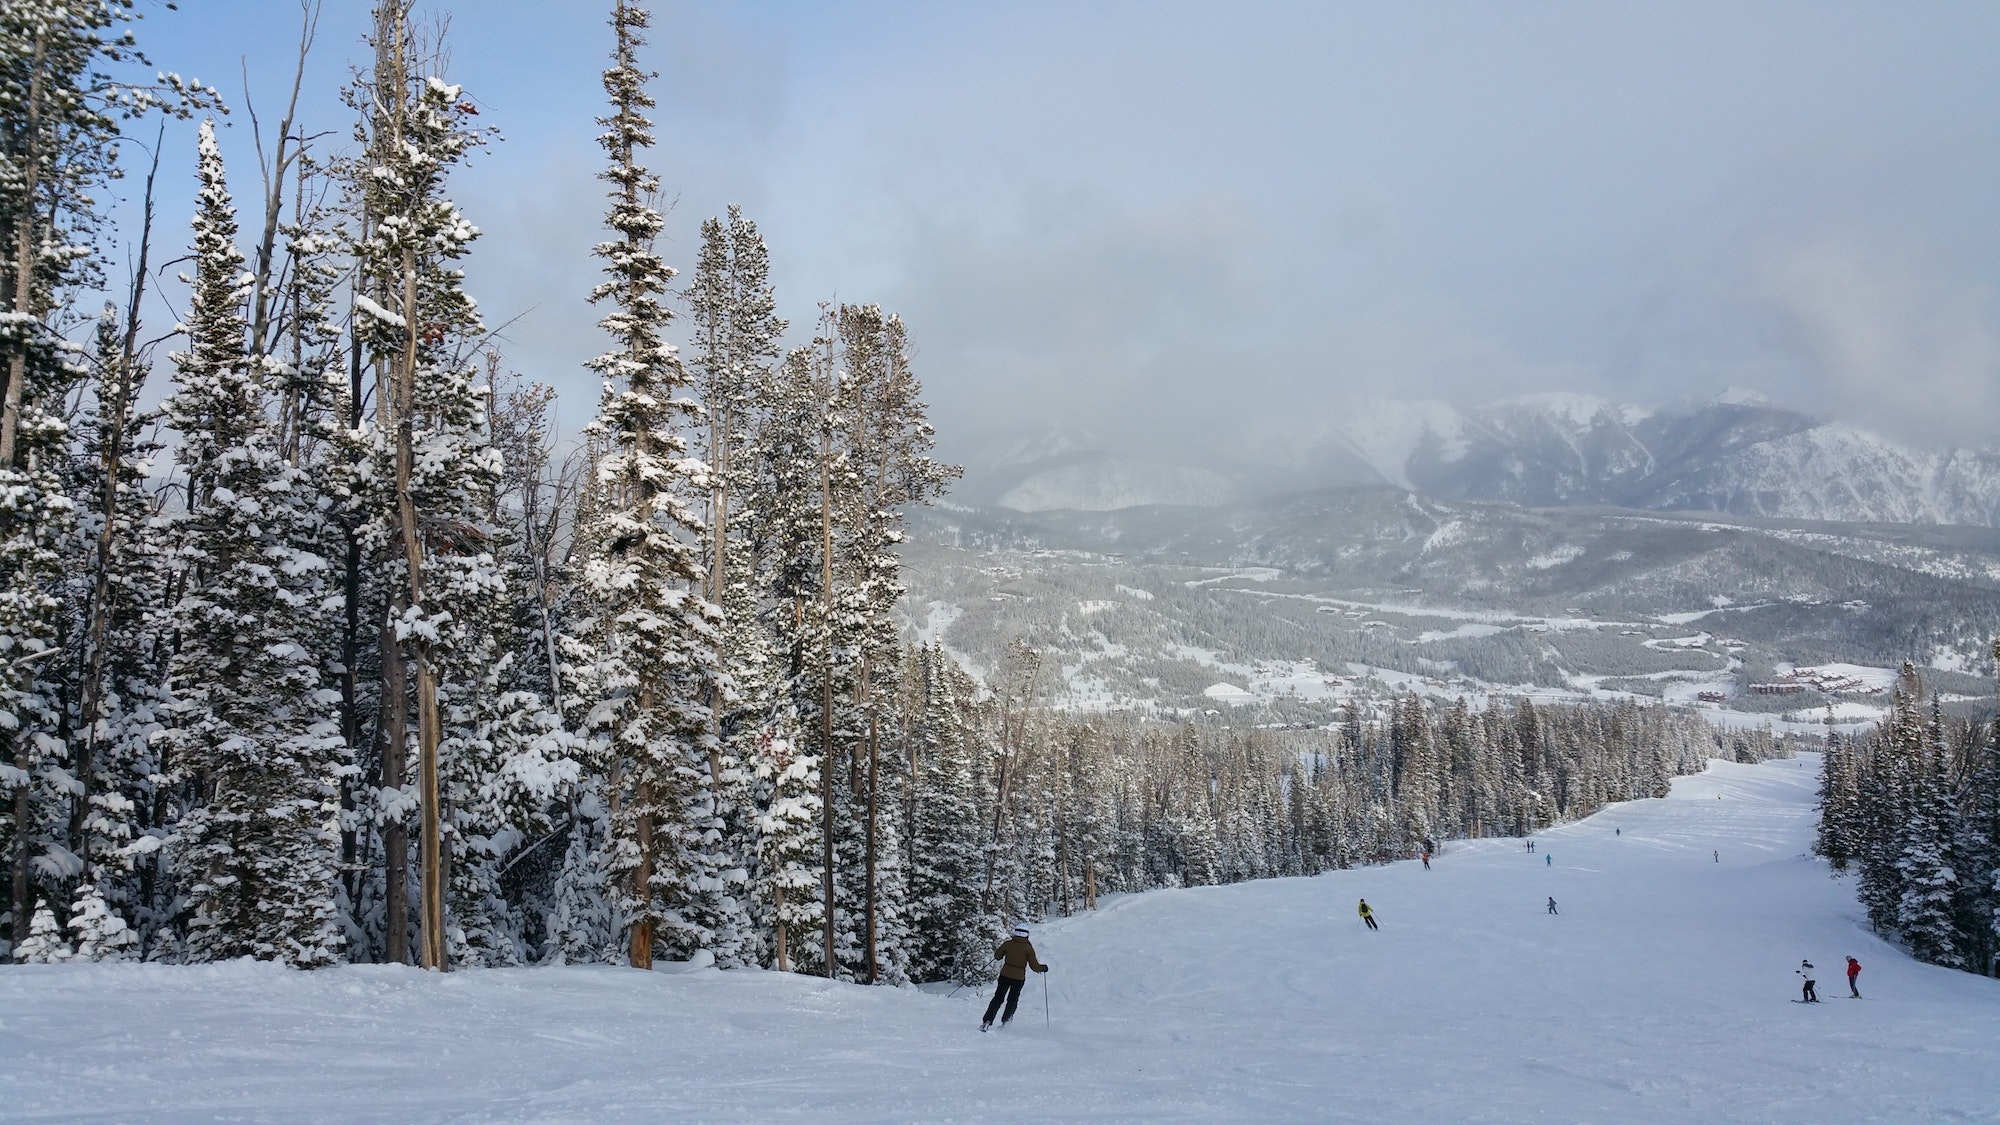 Big Sky Resort in Montana sits just northwest of Yellowstone National Park.